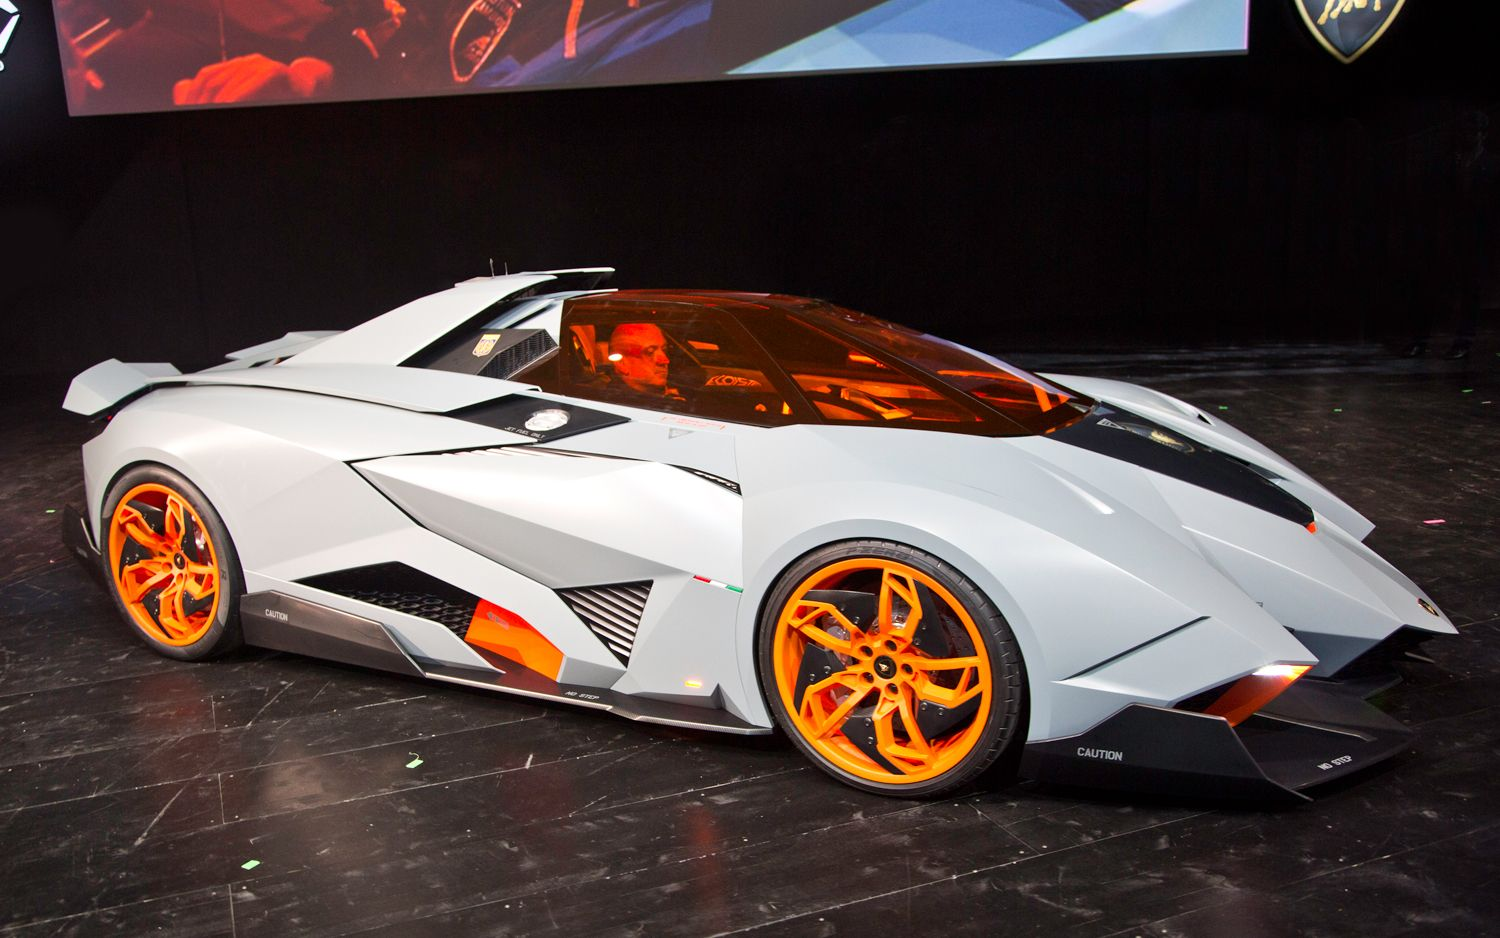 20 Water Lamborghini Egoista Pictures And Ideas On Weric